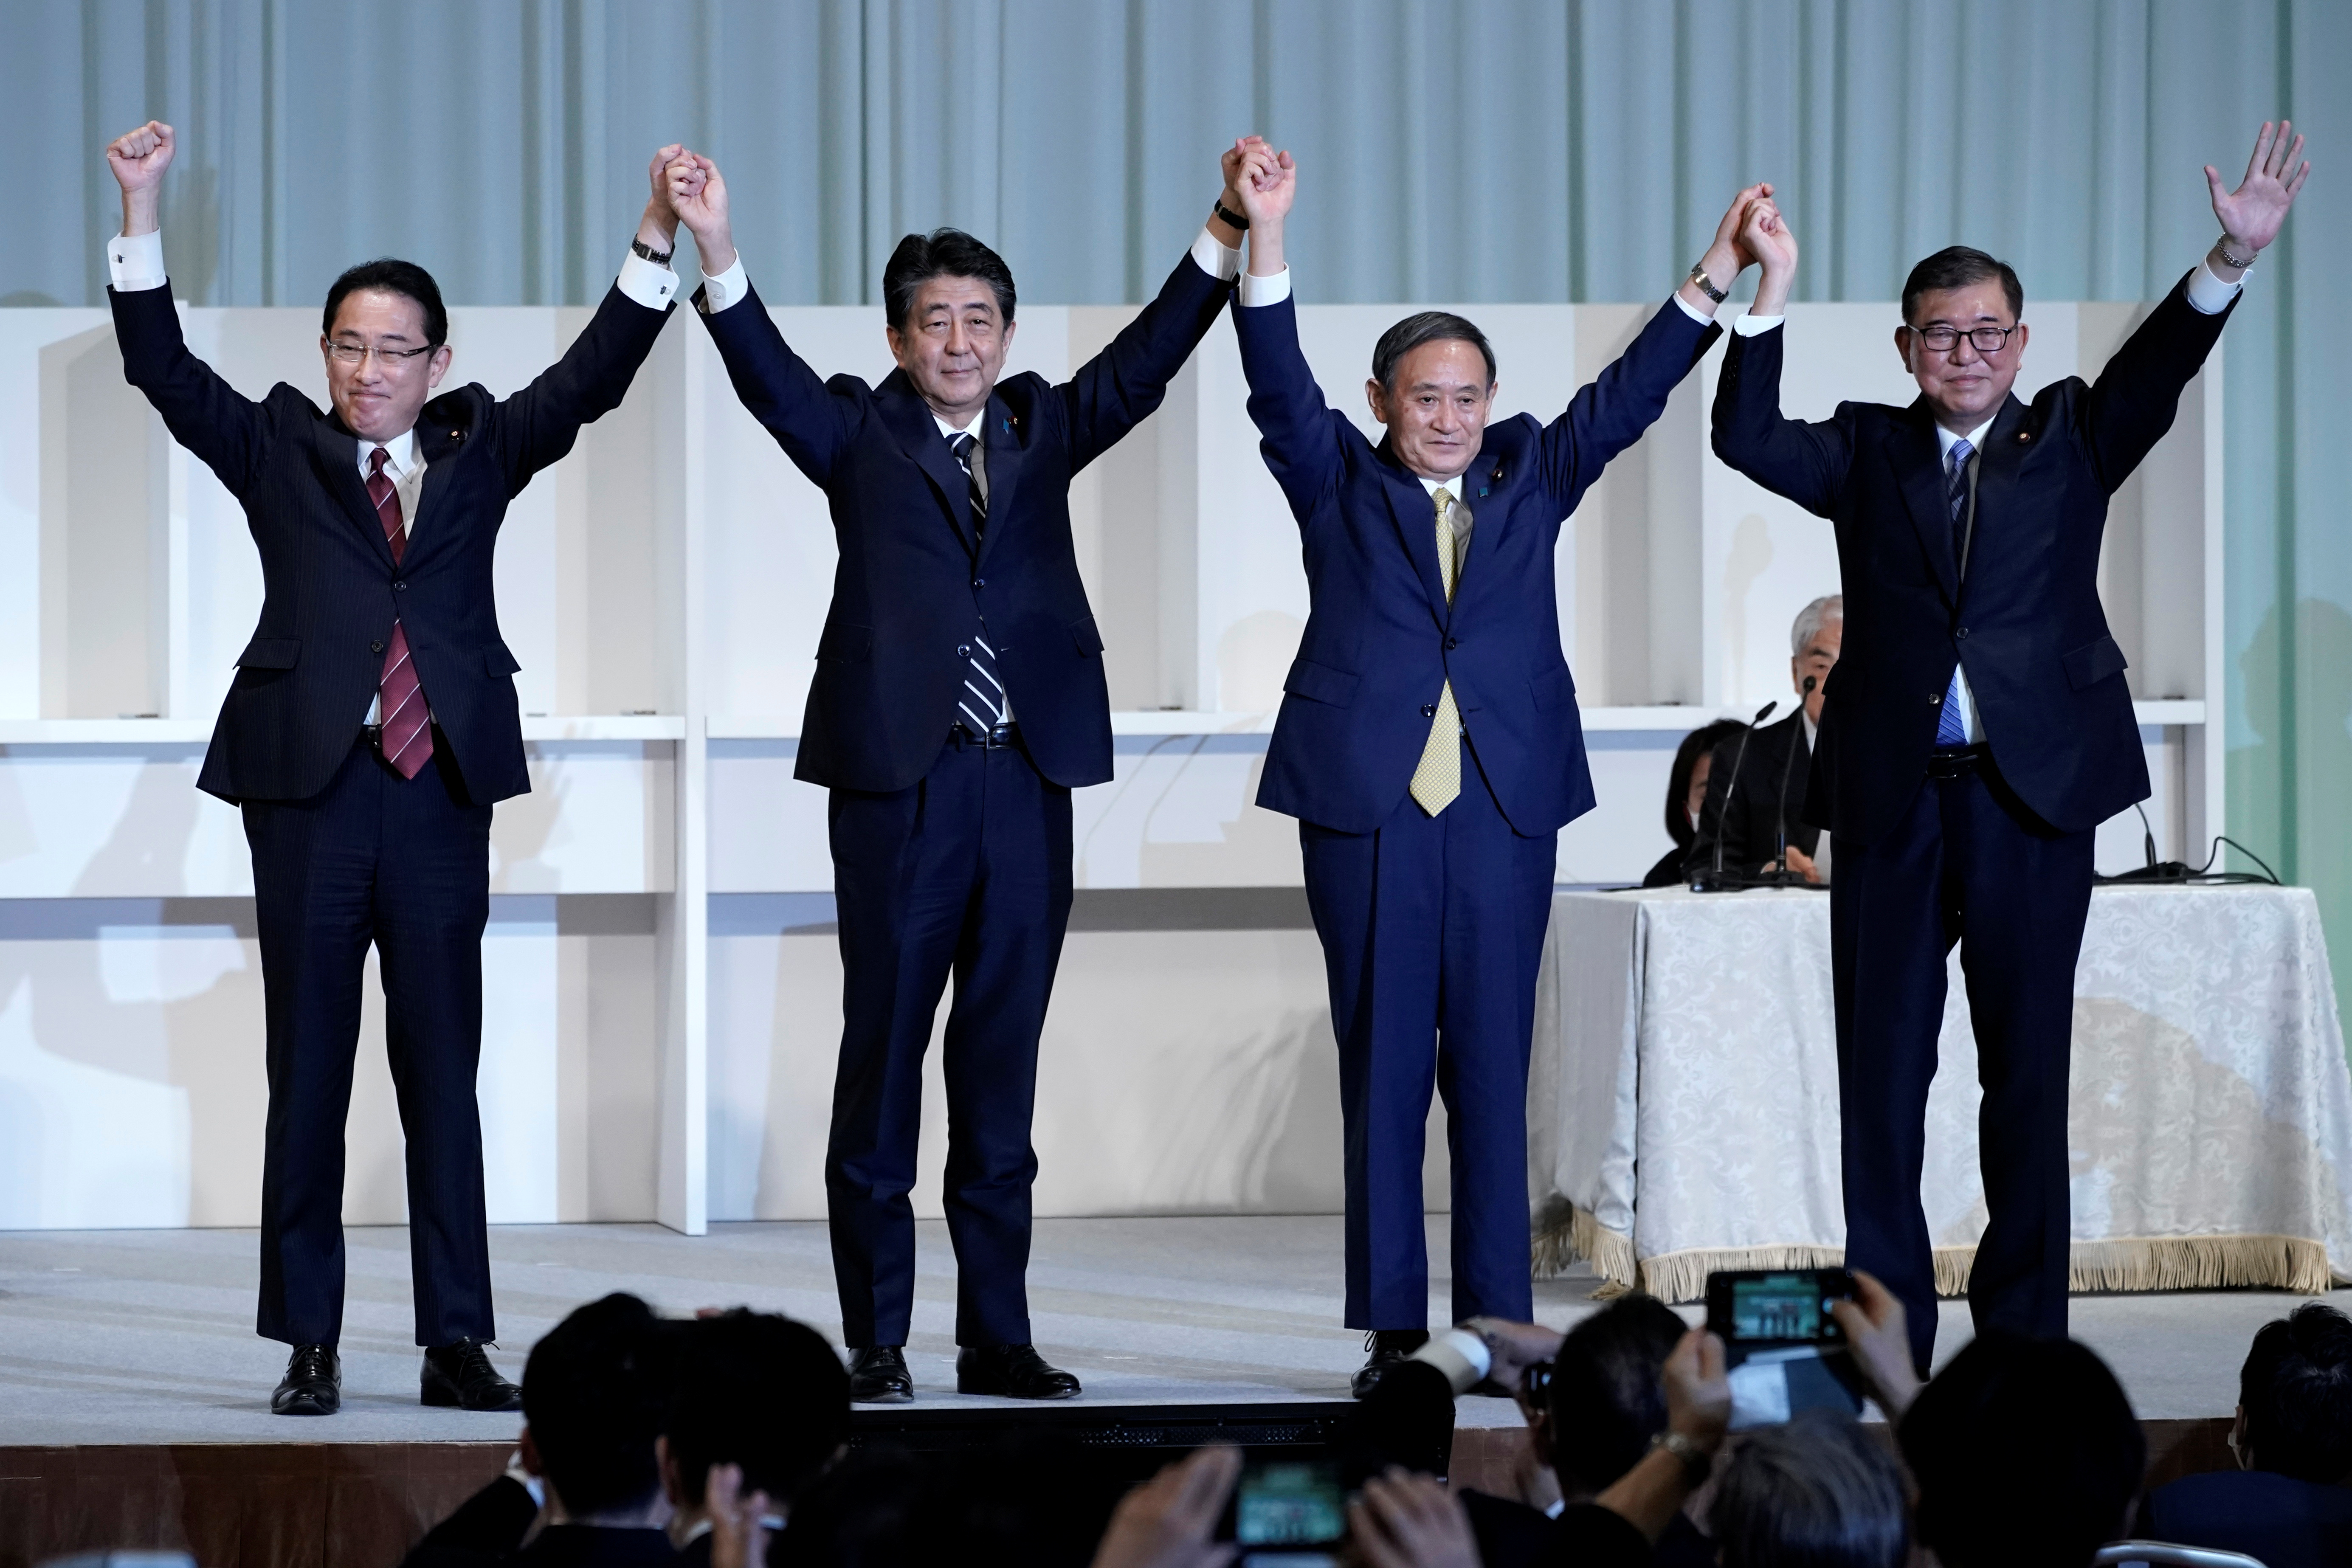 Japan's Prime Minister Shinzo Abe, Chief Cabinet Secretary Yoshihide Suga, former Defense Minister Shigeru Ishiba and former Foreign Minister Fumio Kishida celebrate after Suga was elected as new head of the ruling party at the Liberal Democratic Party's (LDP) leadership election in Tokyo, Japan September 14, 2020. Eugene Hoshiko/Pool via REUTERS